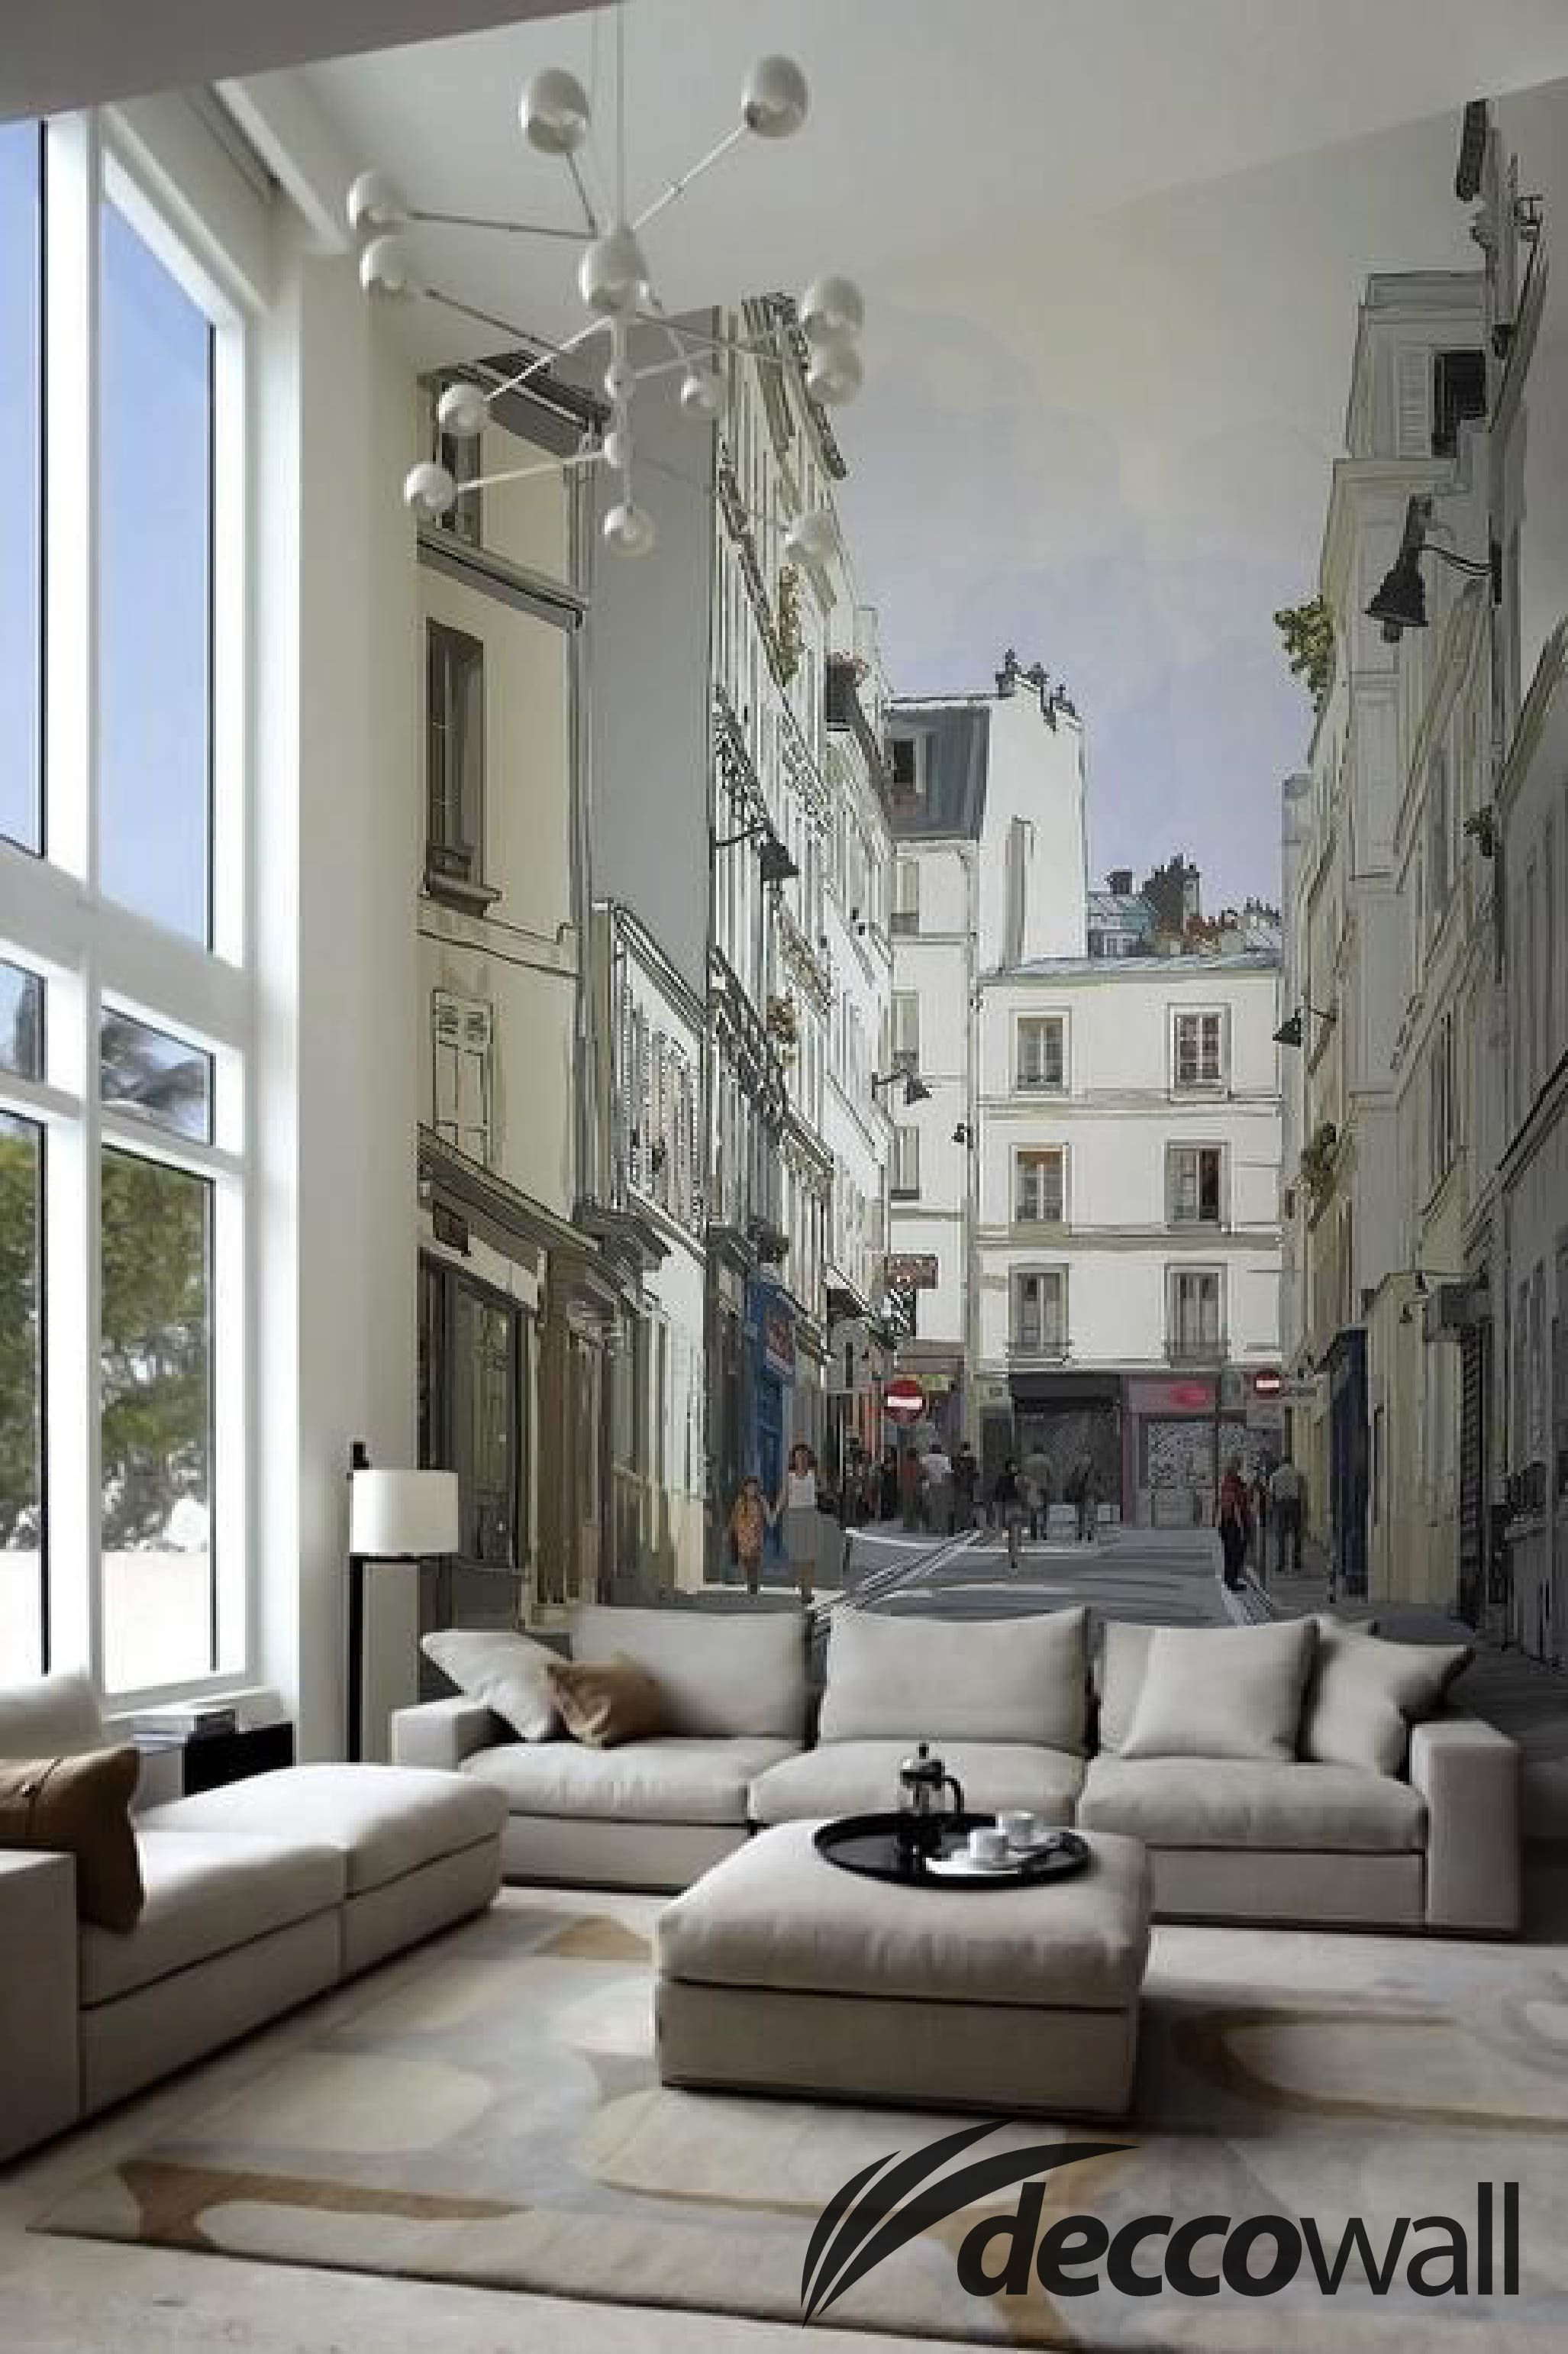 Such ambiance and adds some fun to an often perceived formal room city never sleeps wall murals by pixers